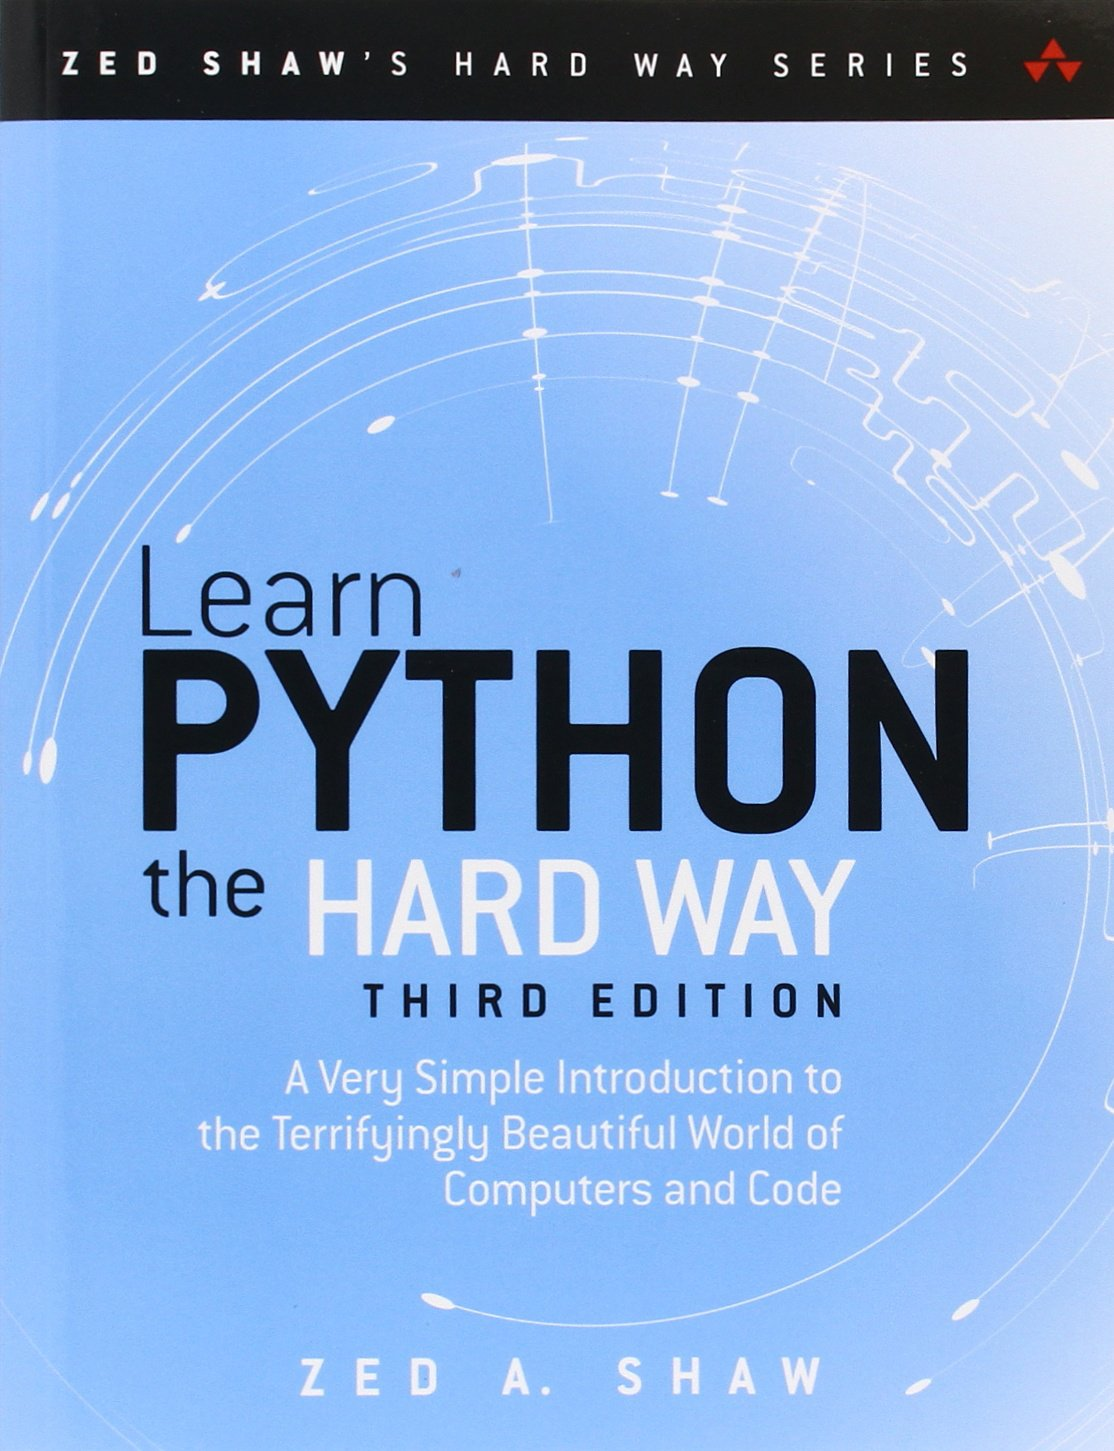 Chris Allen - A review of Learn Python the Hard Way, 3rd ed